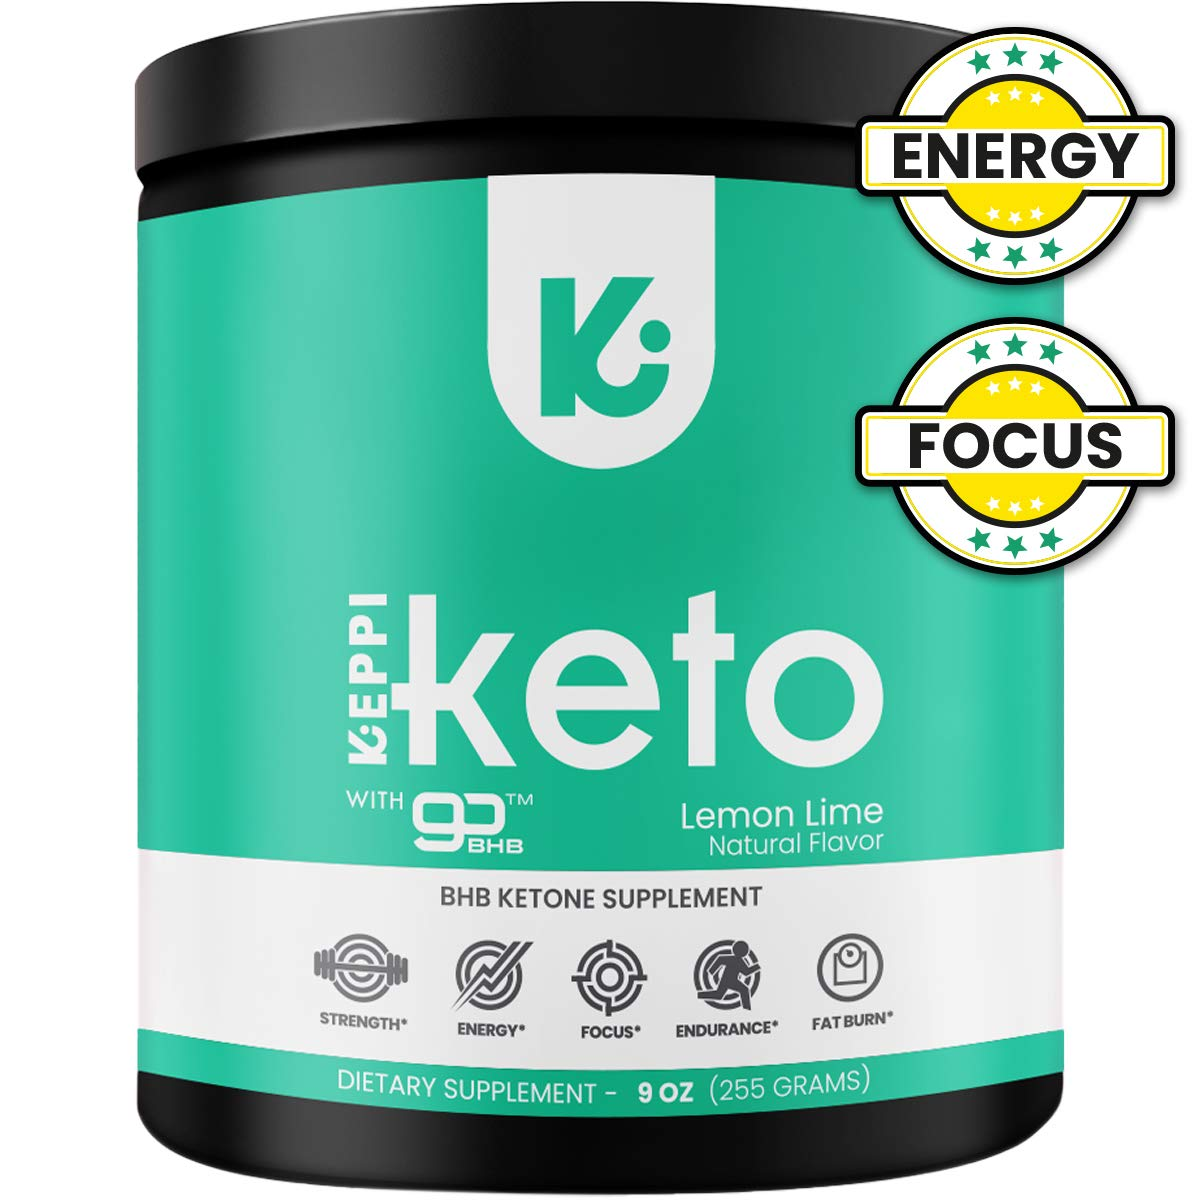 KEPPI Keto BHB Exogenous Ketones Powder Supplement: Patented BHB Ketones Formulated to Increase Energy, Burn Fat, Maintain Ketosis and Mental Focus by Keppi